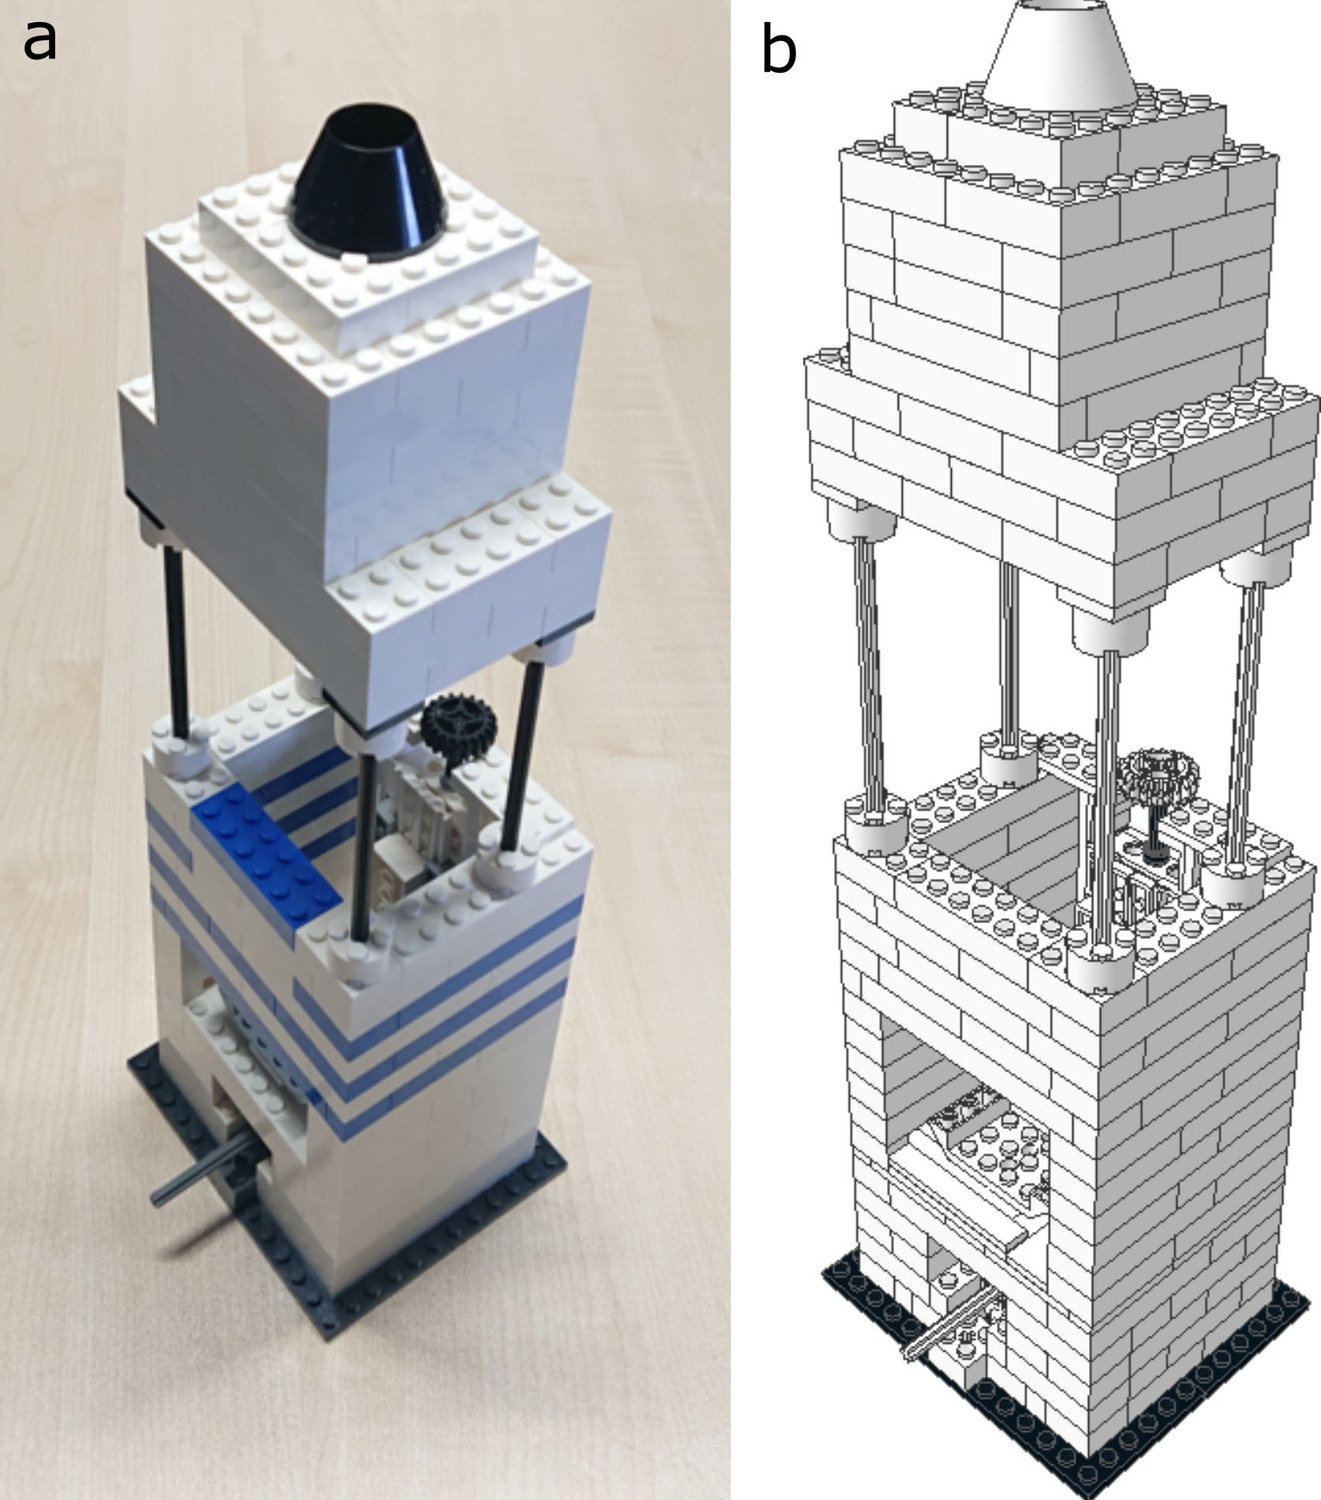 Researchers produced instructions for building the microscope in several languages: https://github.com/tobetz/LegoMicroscope